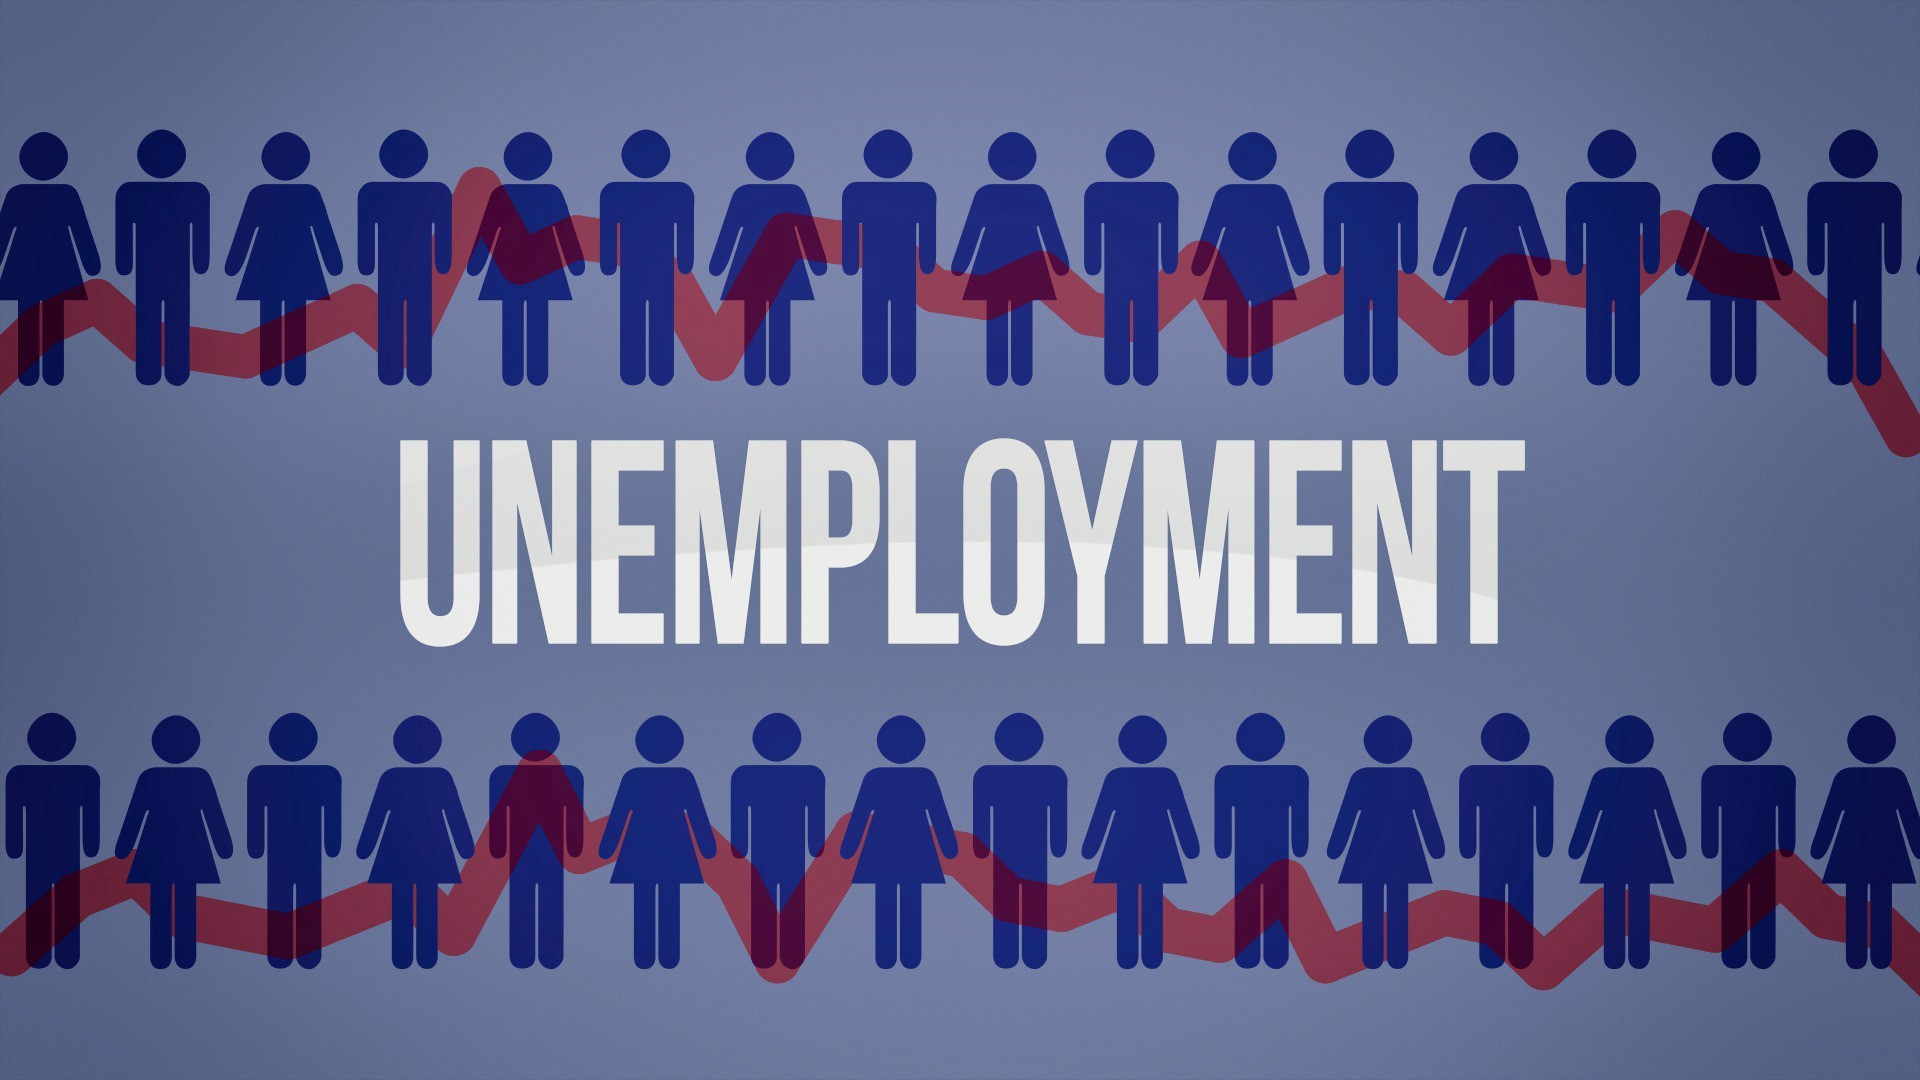 Unemployment Rate Down By 0.6 Percentage Points In Q4 2019